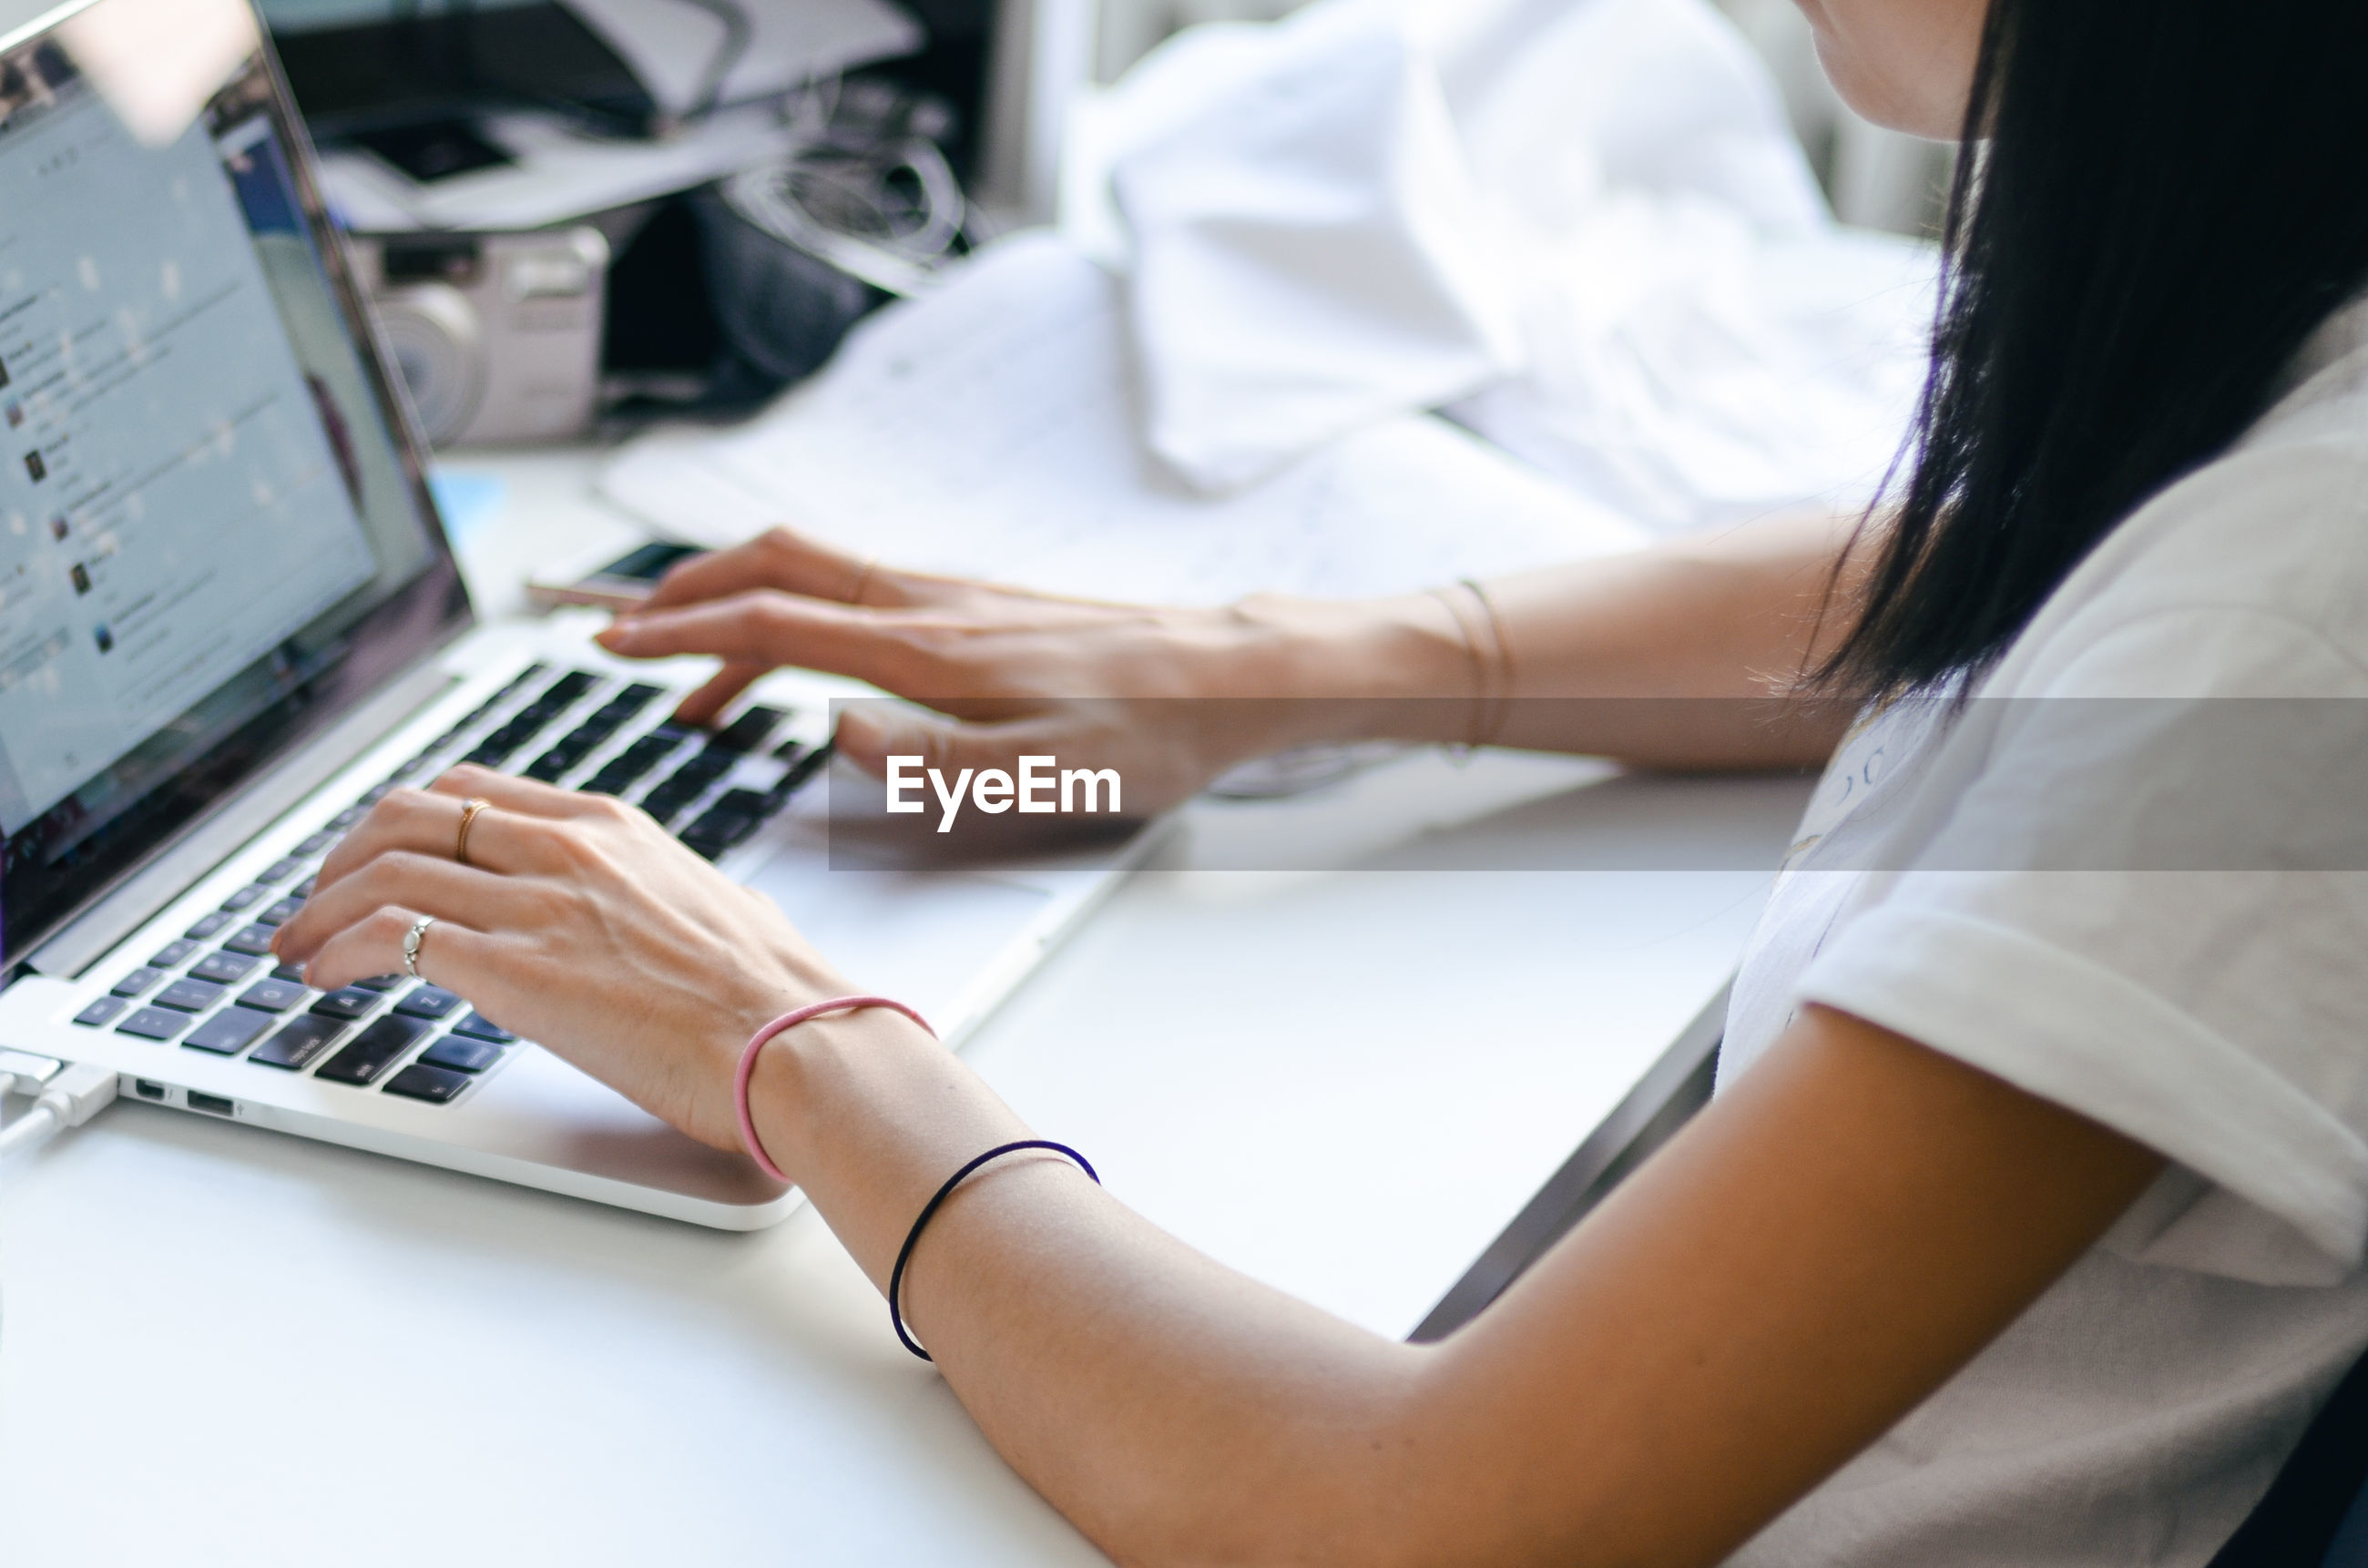 Midsection of woman using laptop at desk in office